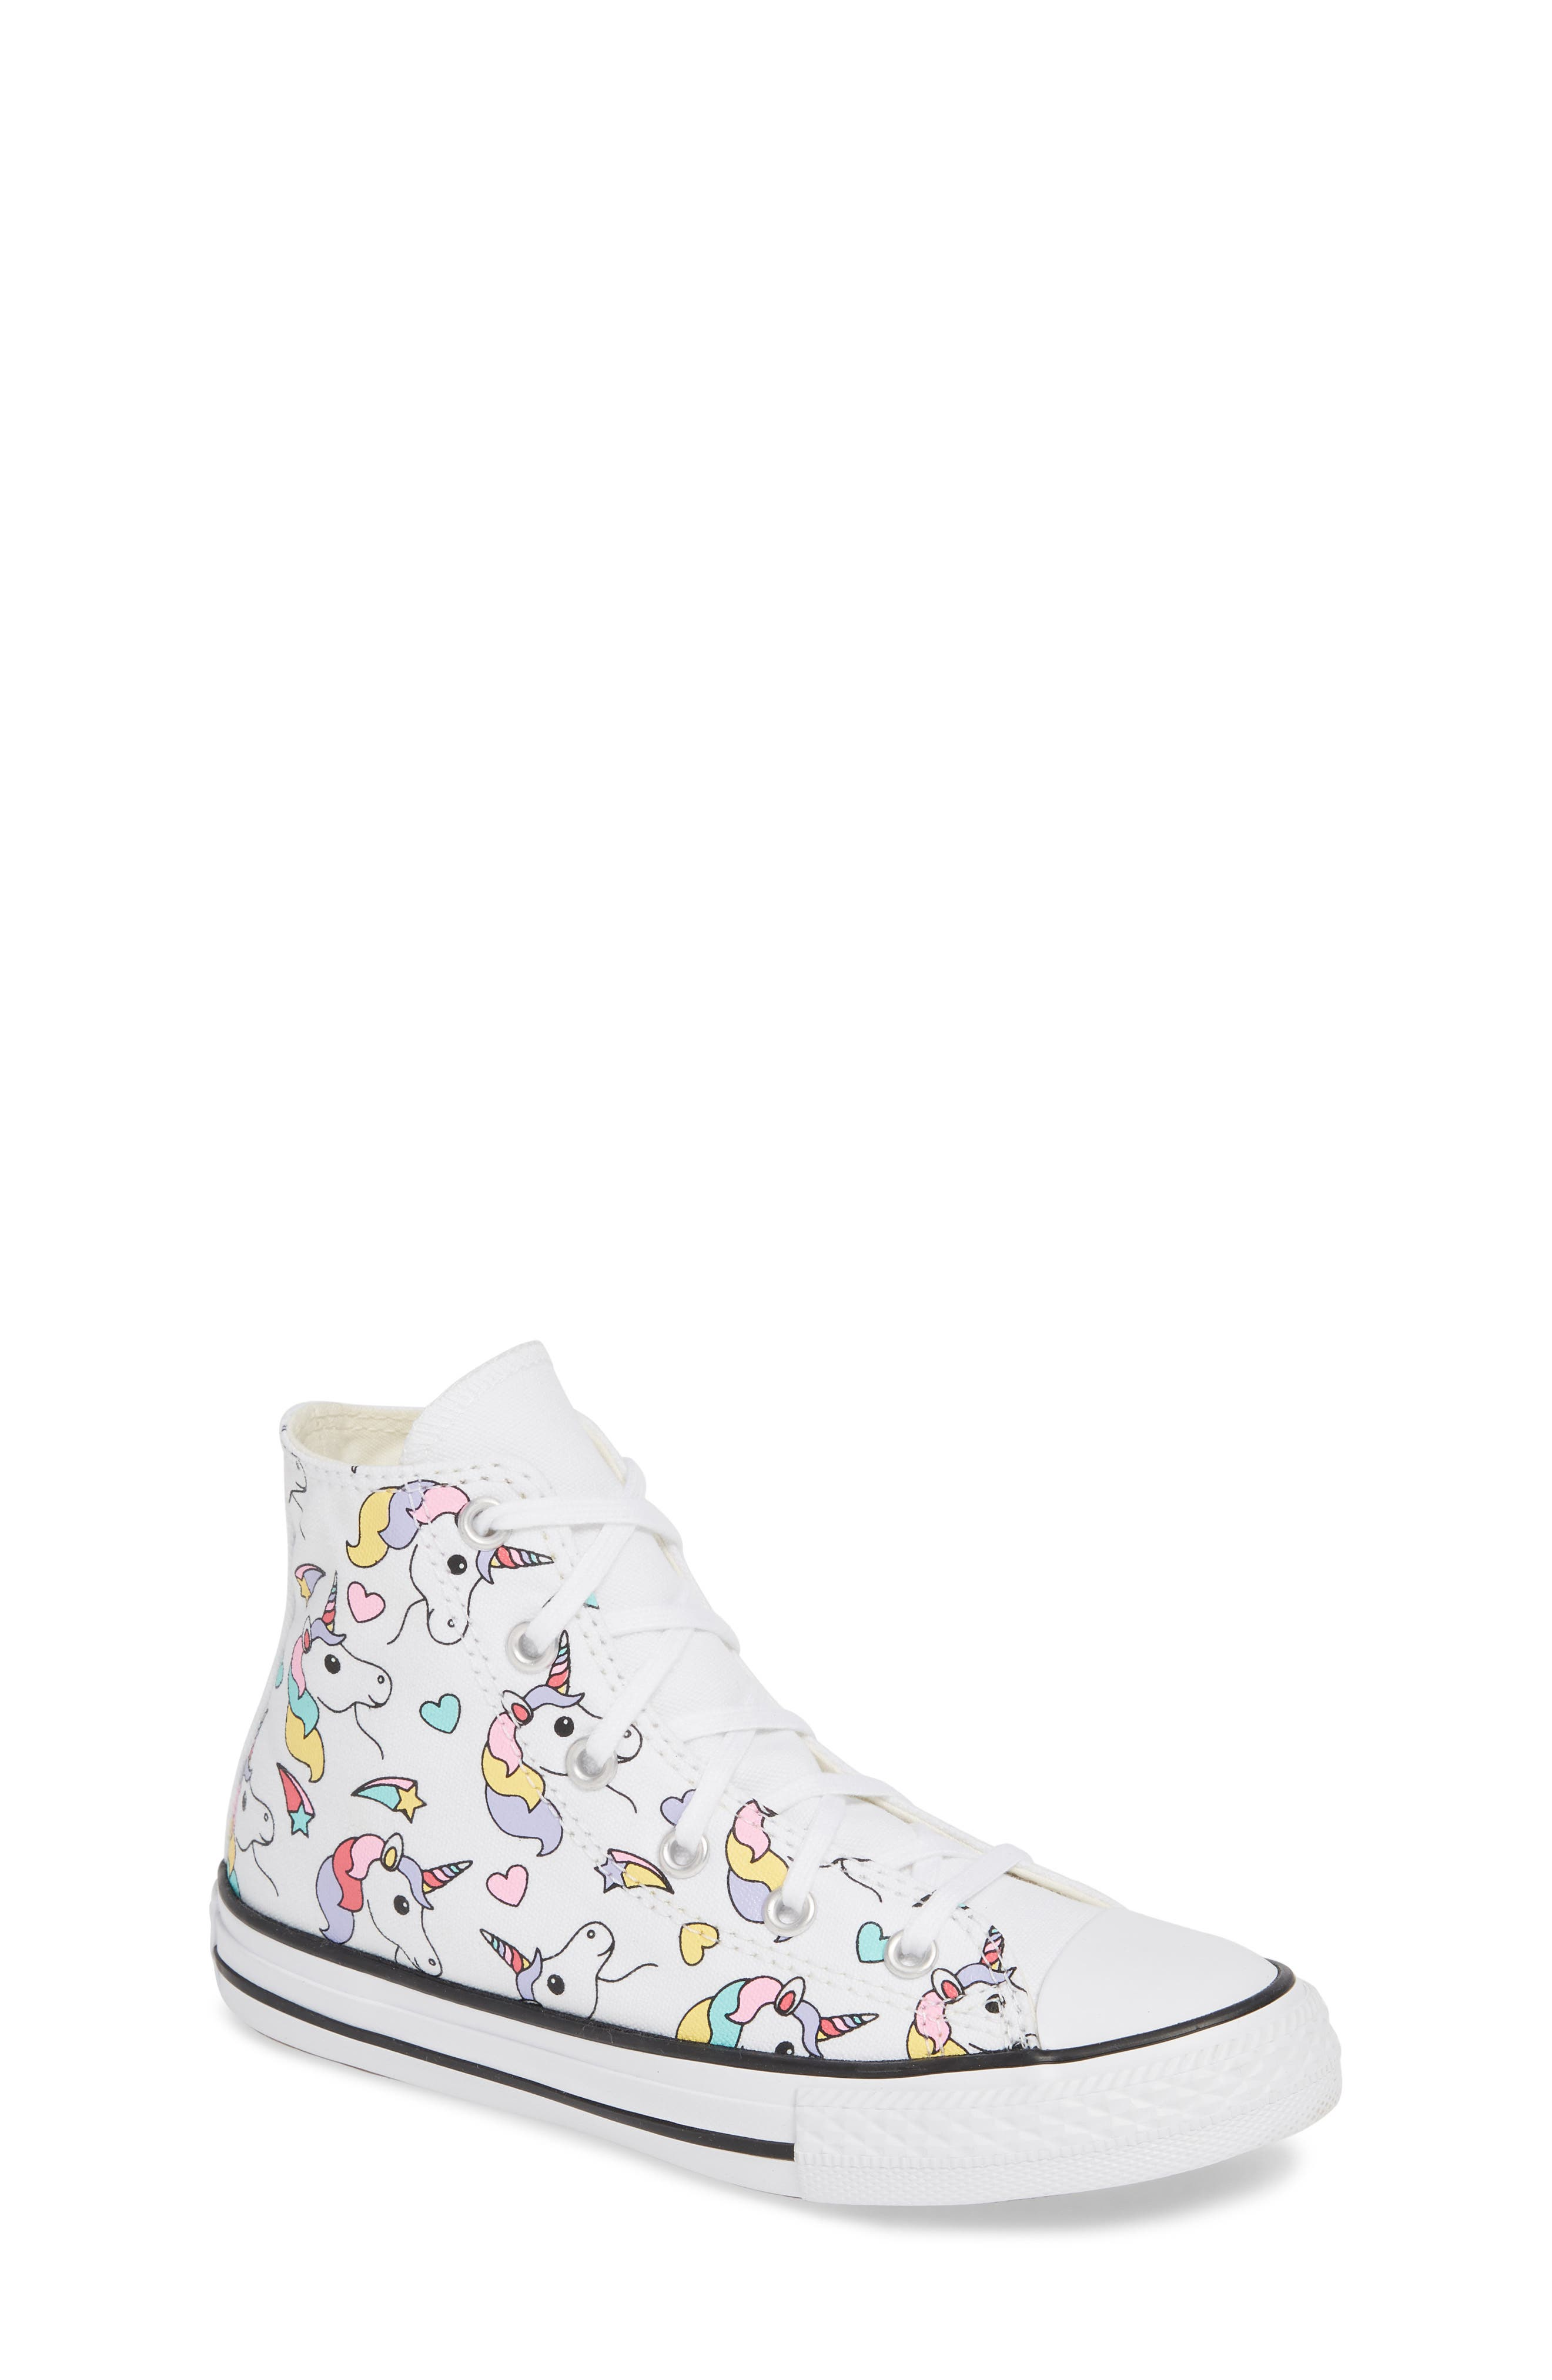 Unicorn White Rainbow Sneakers Shoes Girls Toddlers